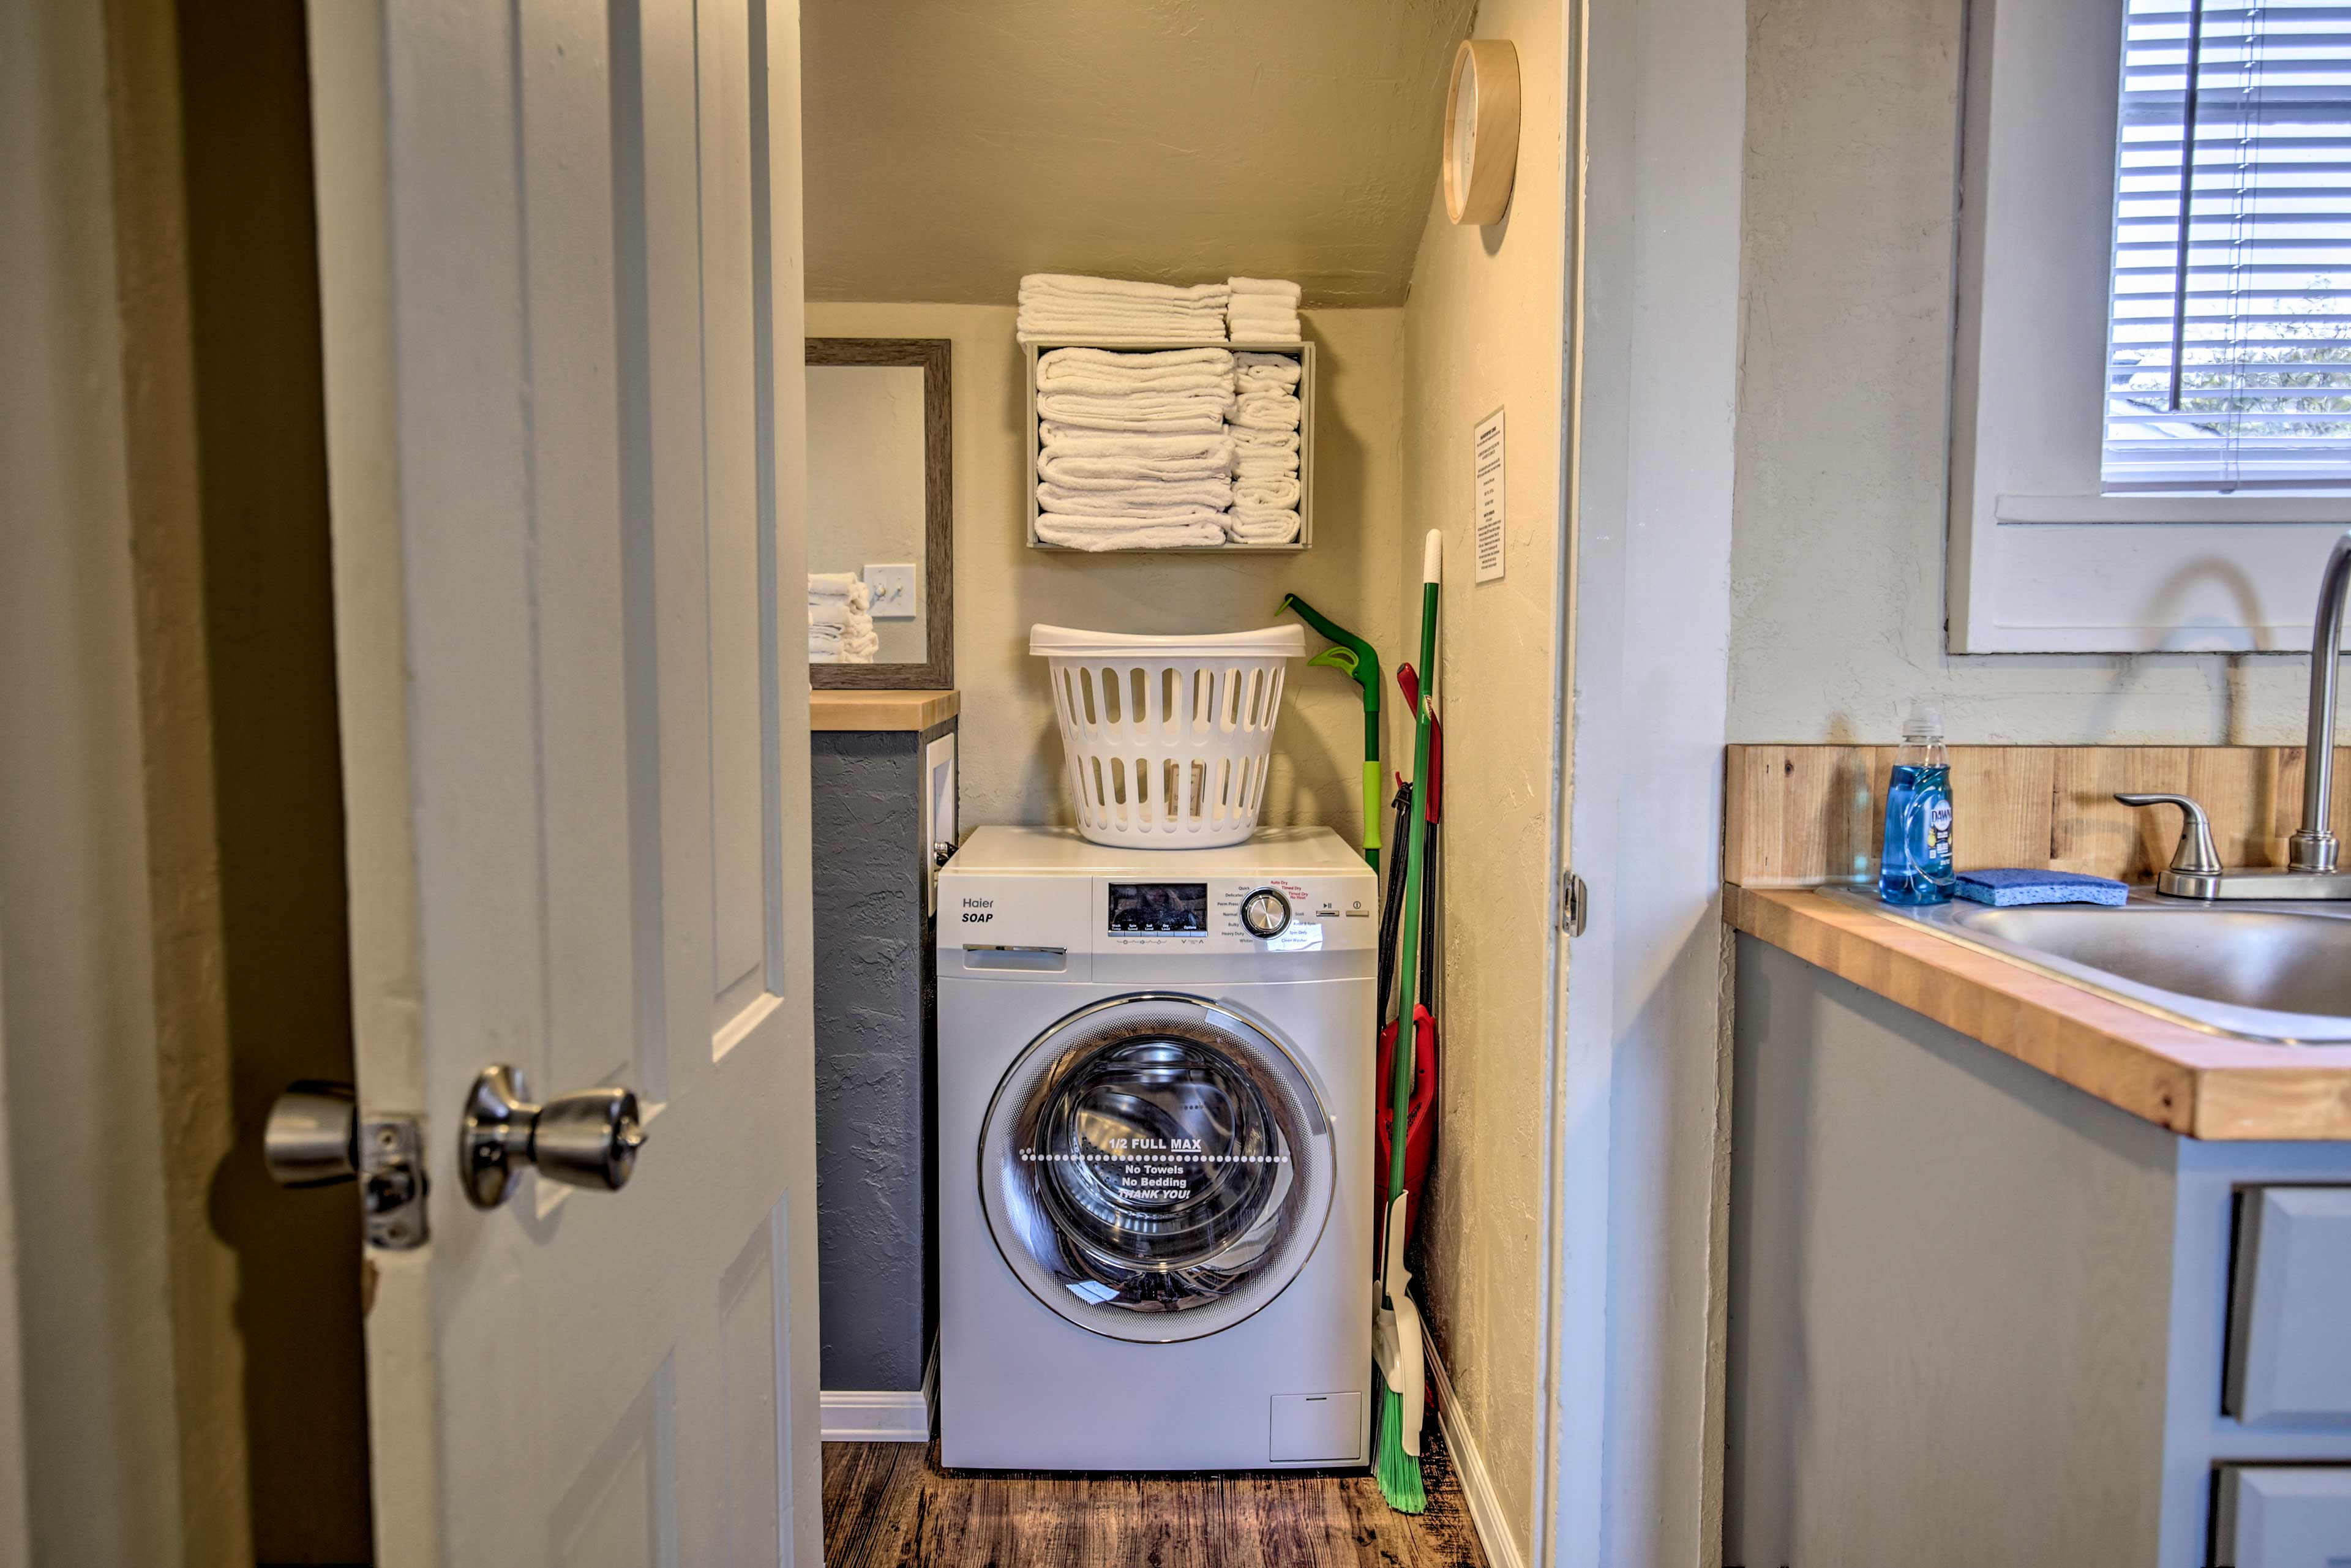 Stick a load of laundry in during your stay.